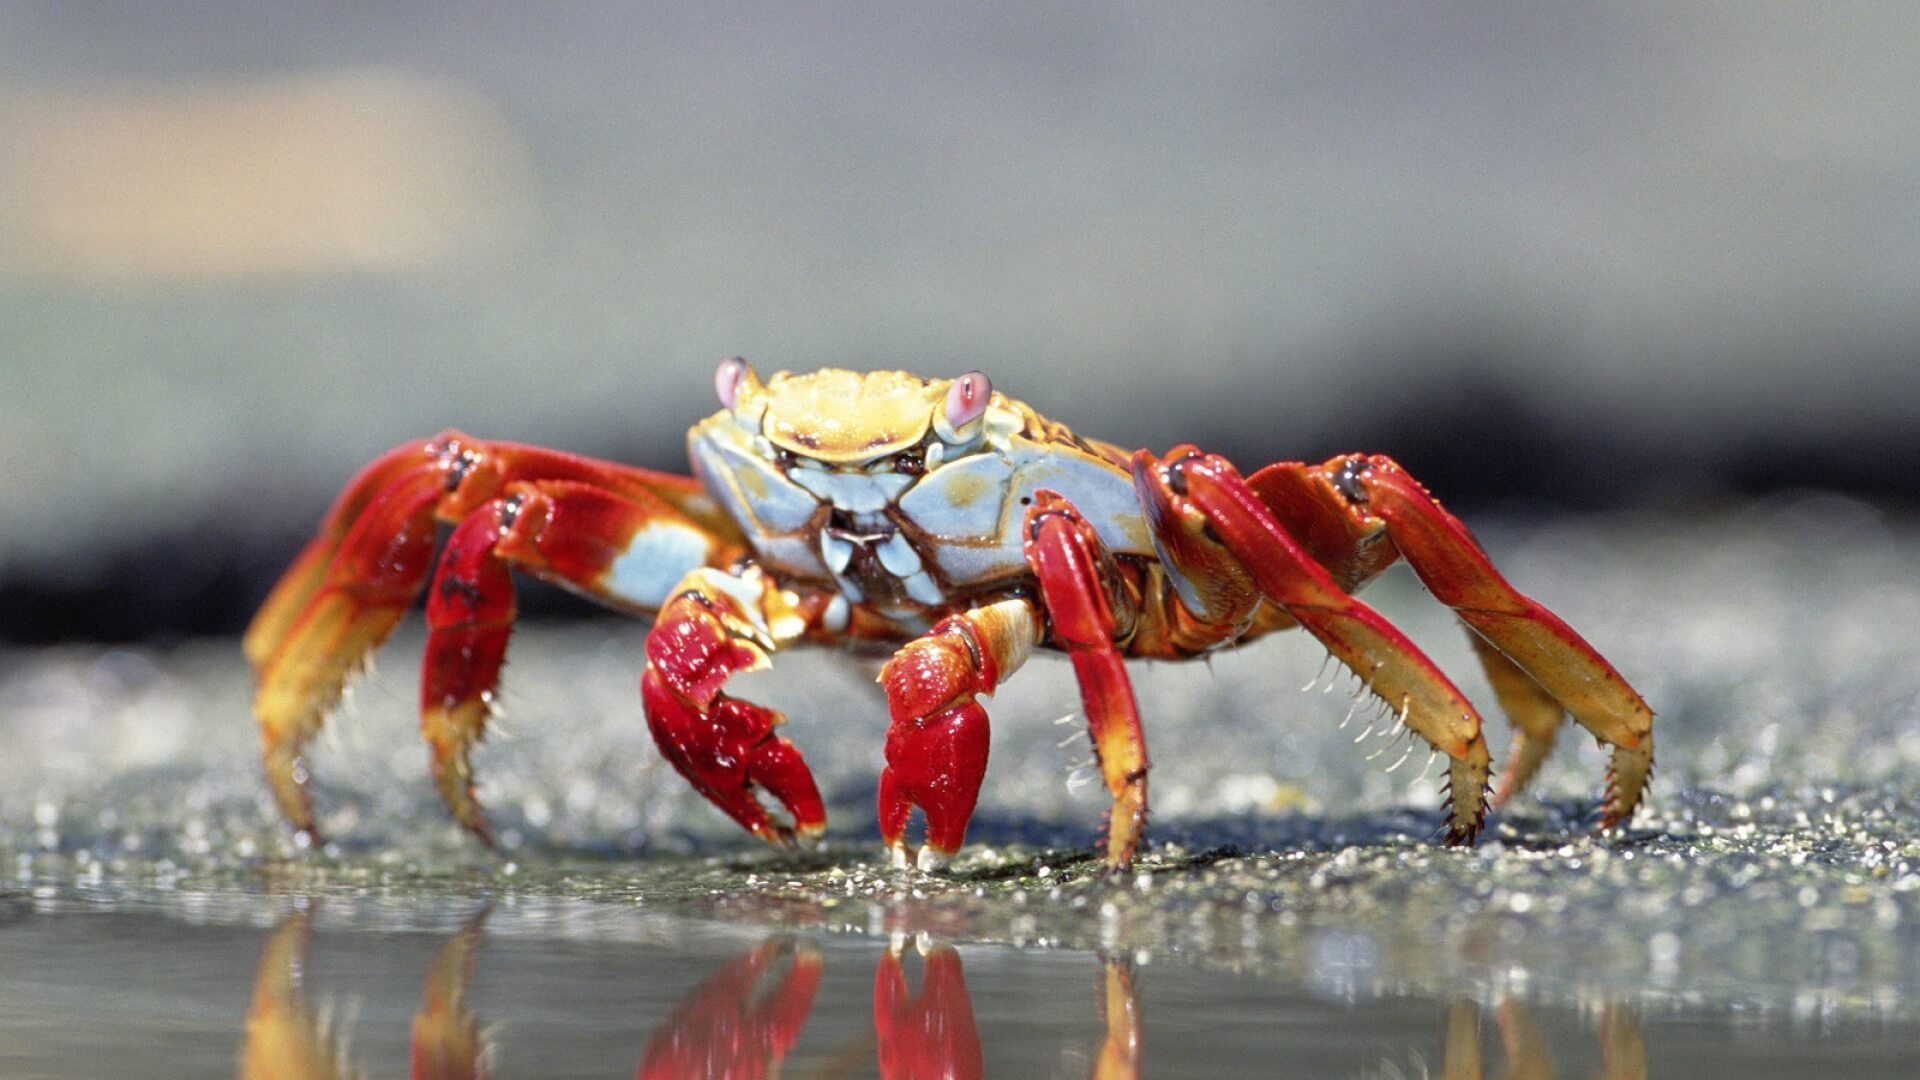 Crab Free Wallpaper and Background